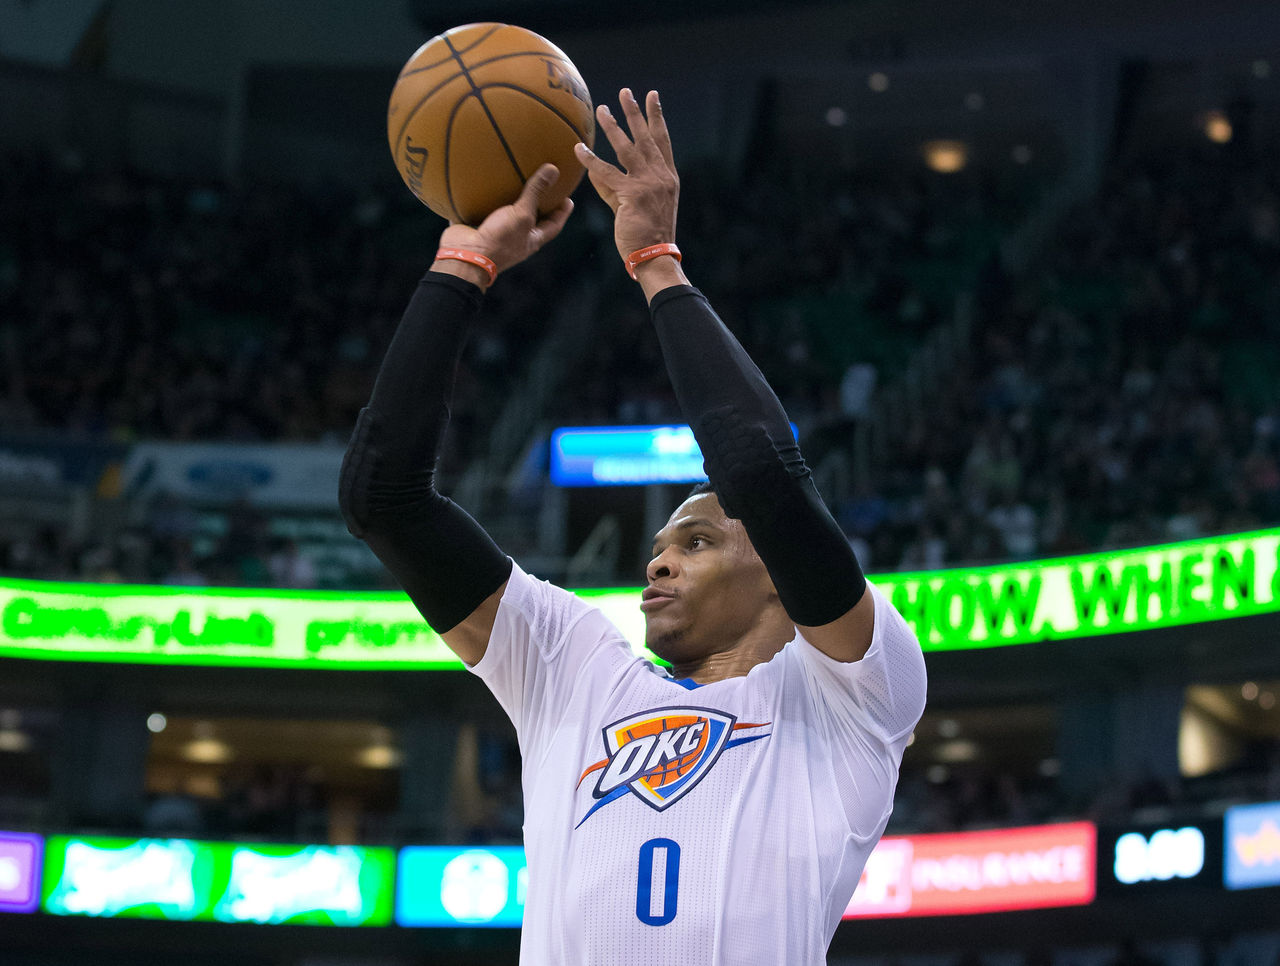 Cropped 2017 01 24t033847z 1662324173 nocid rtrmadp 3 nba oklahoma city thunder at utah jazz